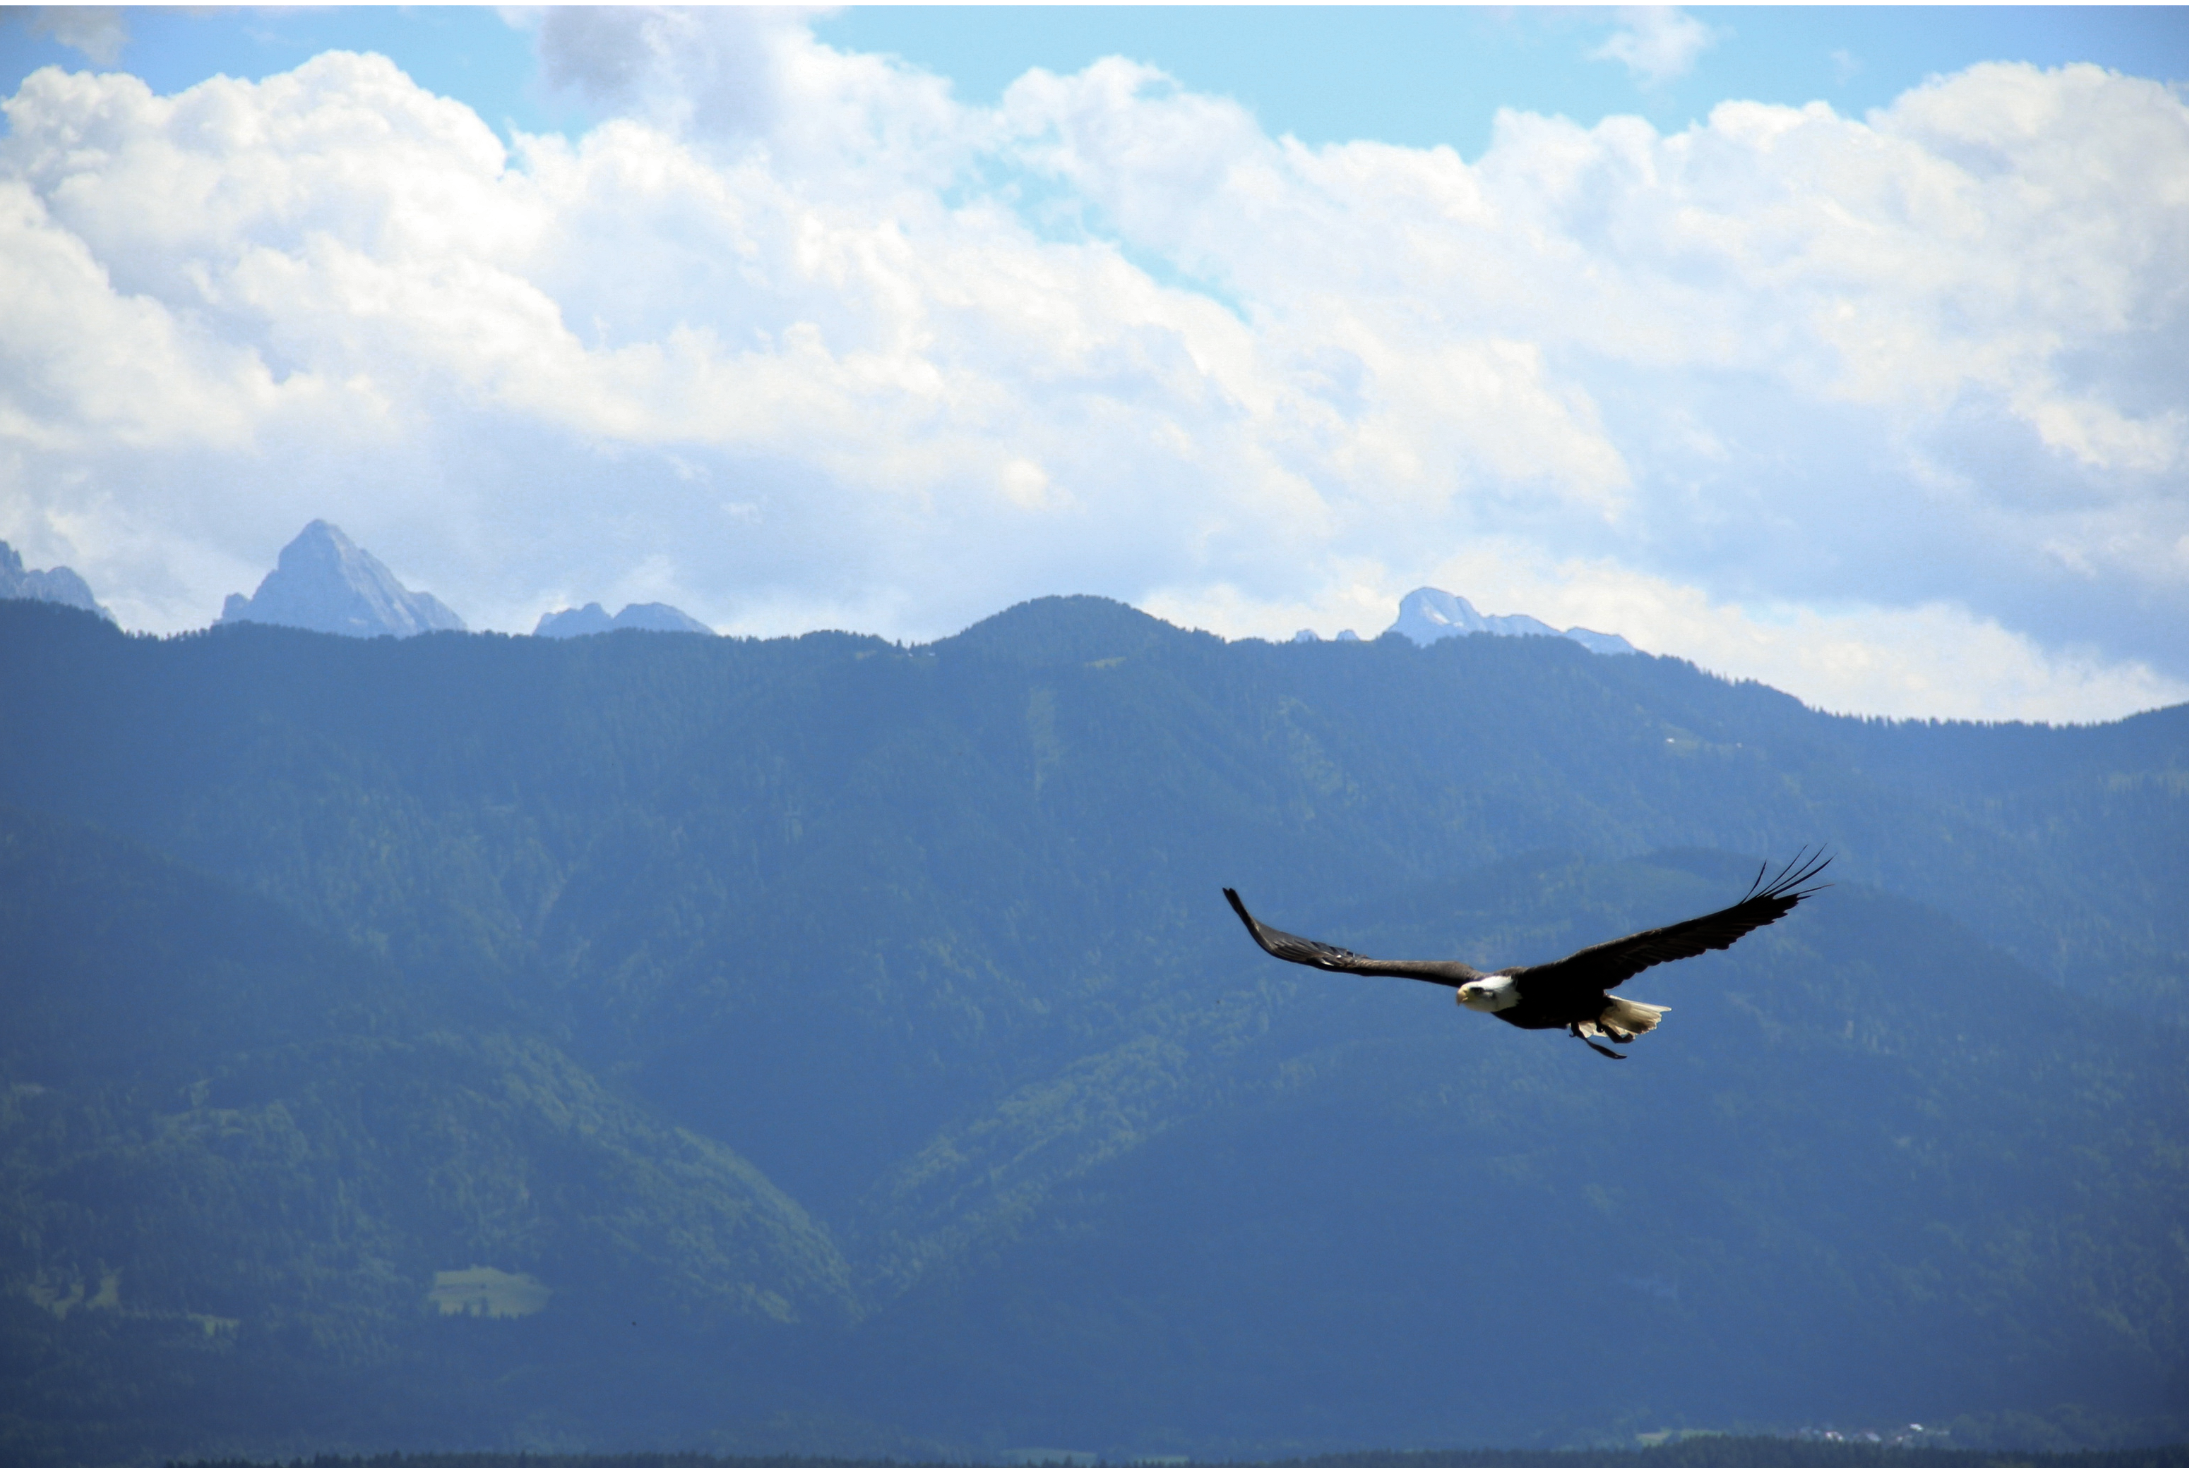 A bald eagle flies with mountains in the far background.